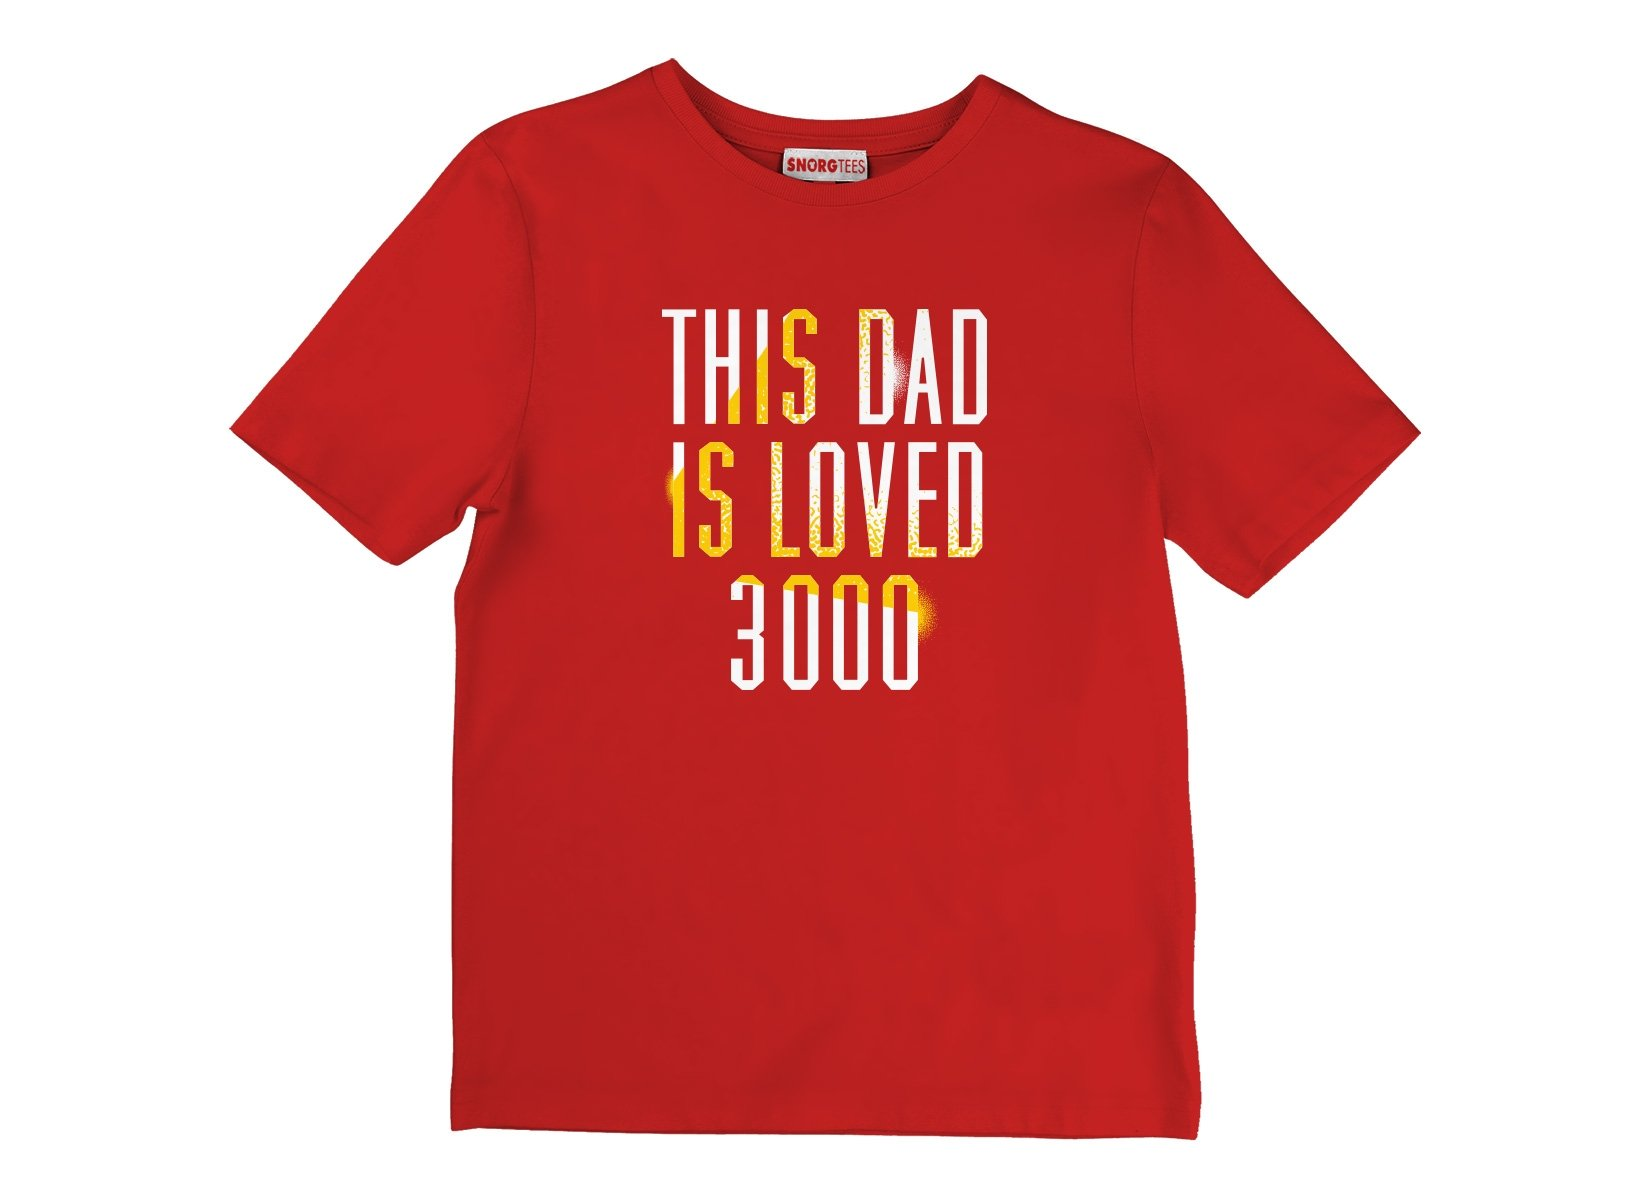 This Dad Is Loved 3000 on Kids T-Shirt